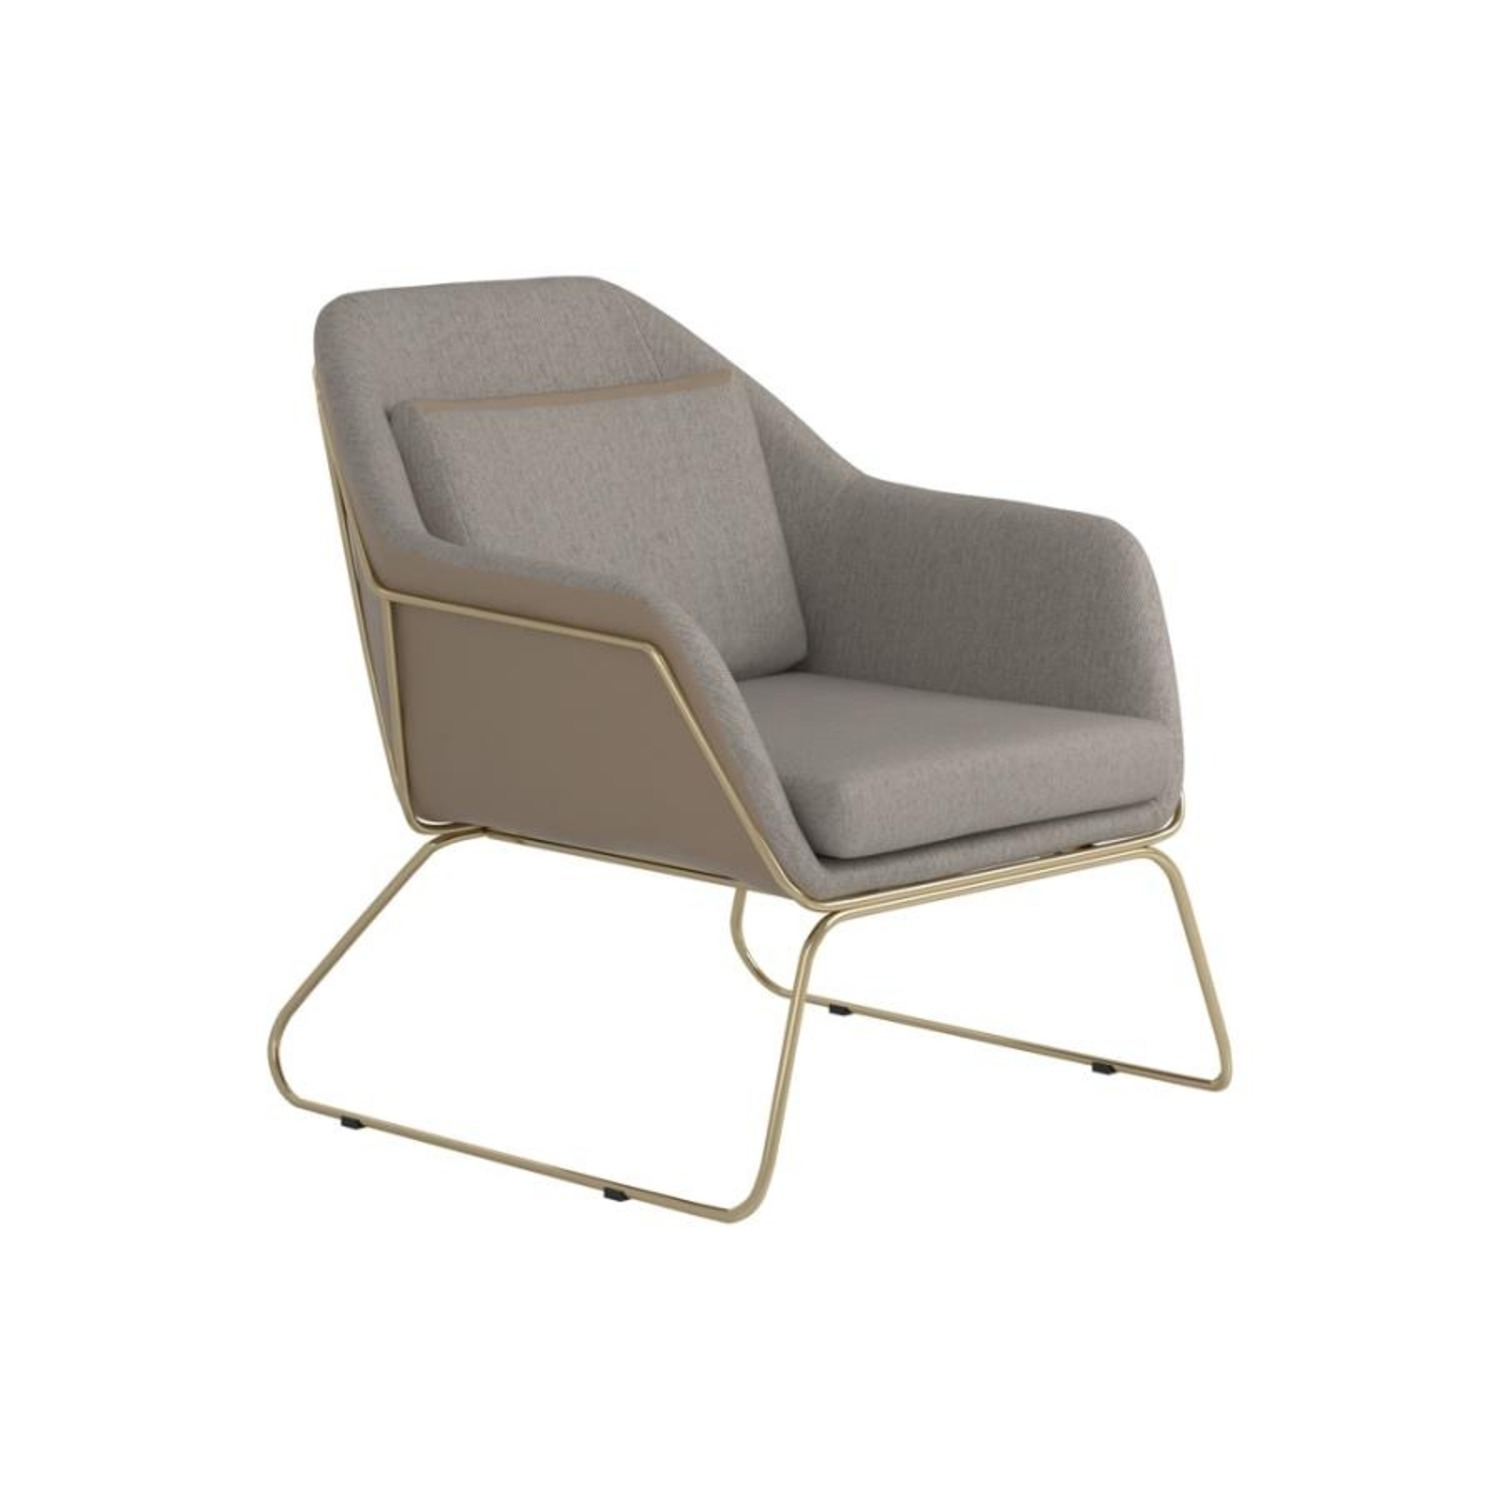 Accent Chair In Linen-Like Beige Fabric - image-0